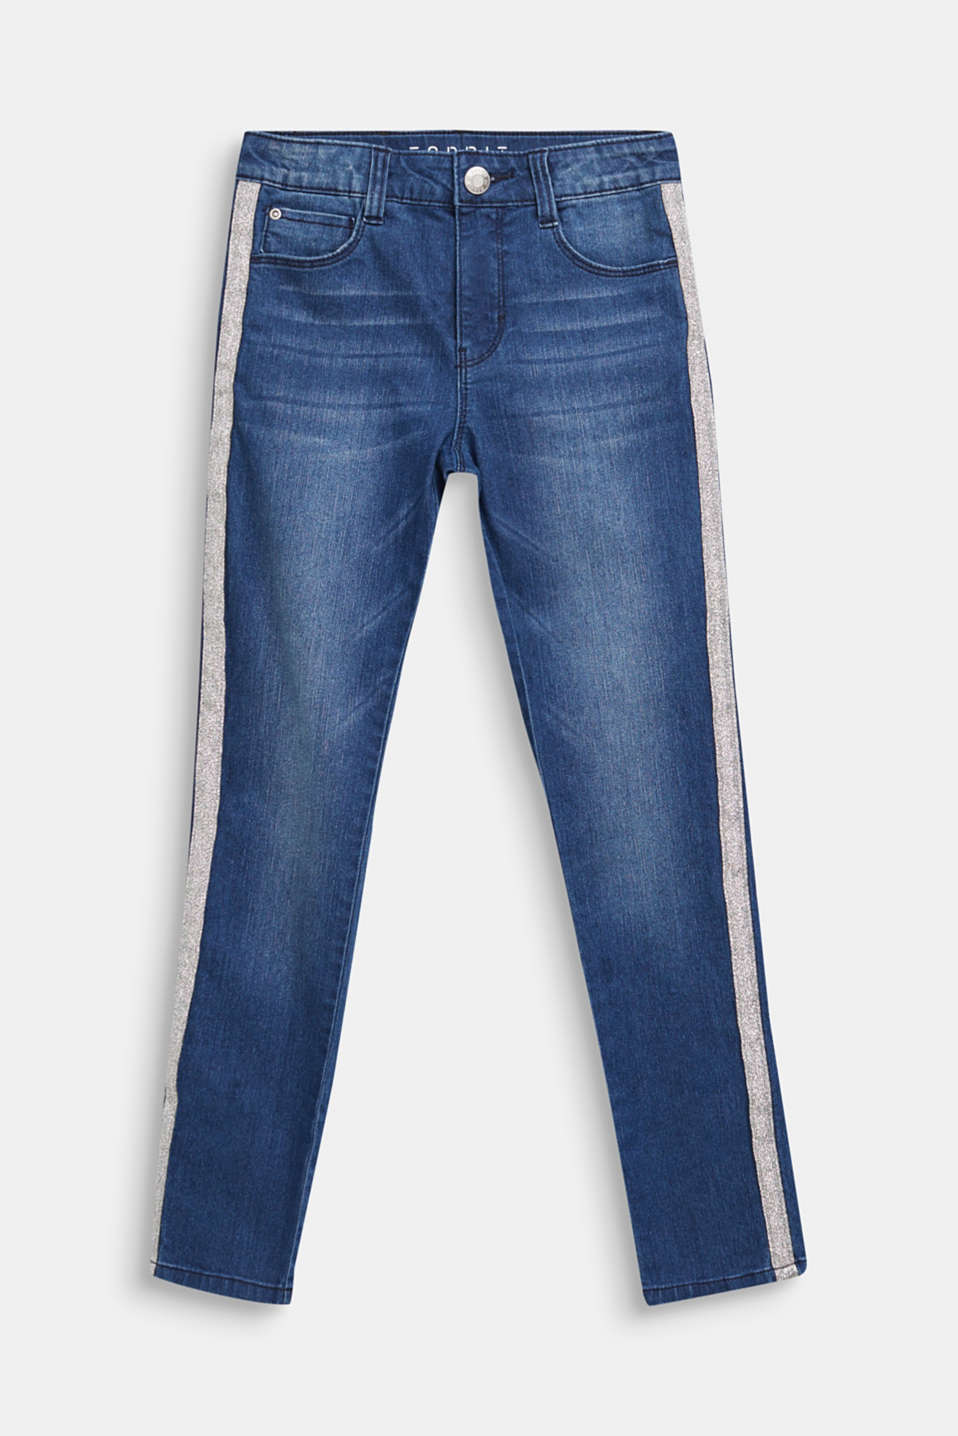 Esprit - Jeans with glittering side stripes